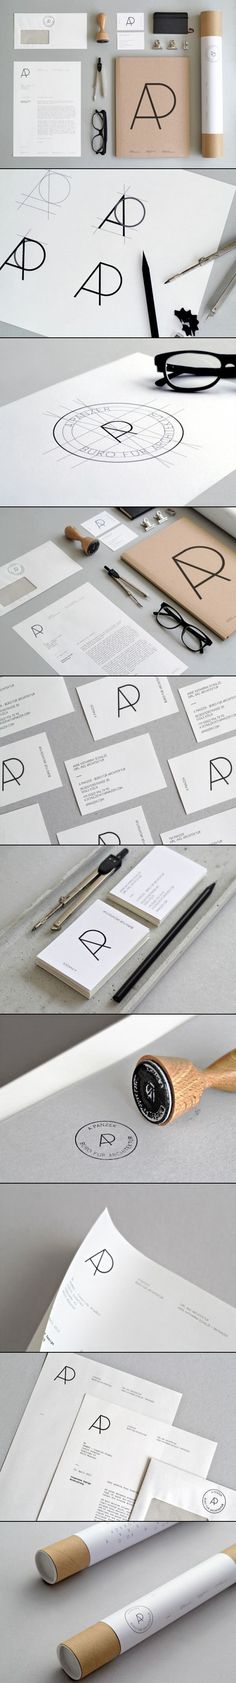 Font  Simplicity  Circular logo  LOVE corporate identity package and how it is put together